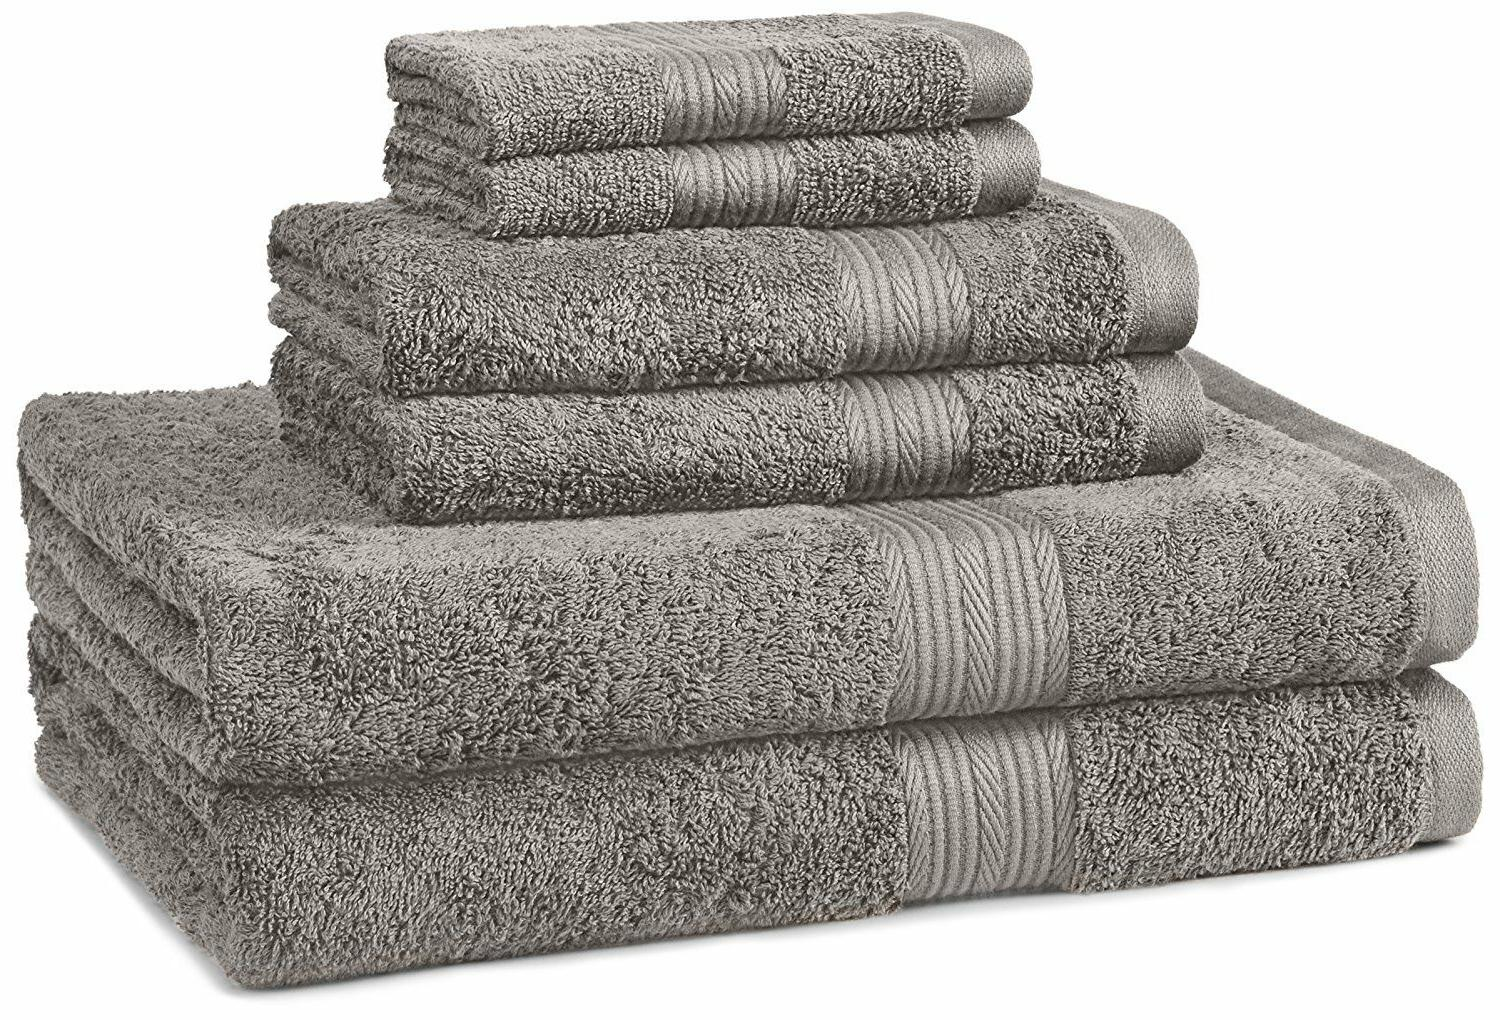 AmazonBasics Fade-Resistant Cotton Towel Set 7